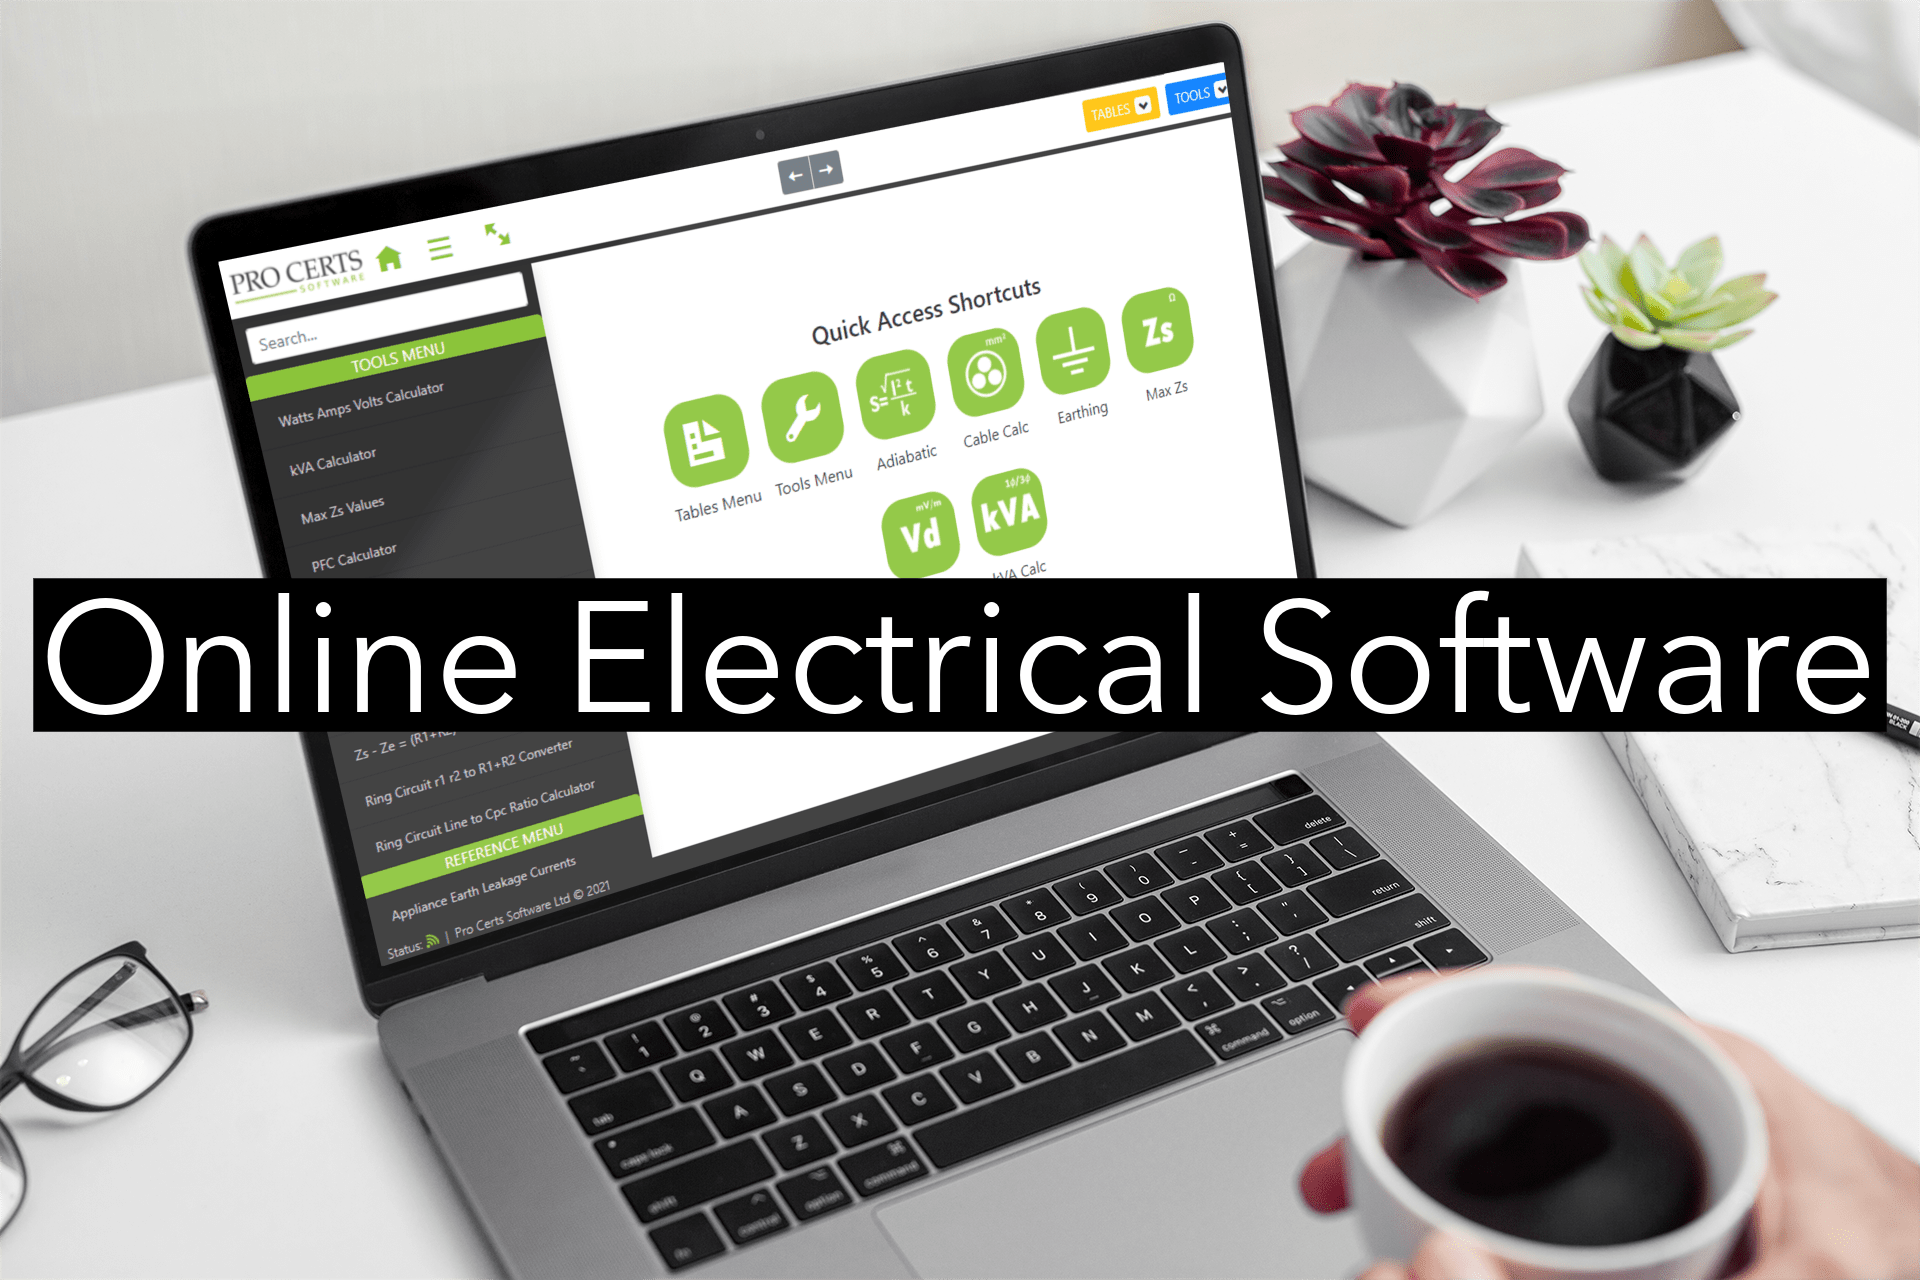 Online Electrical Software